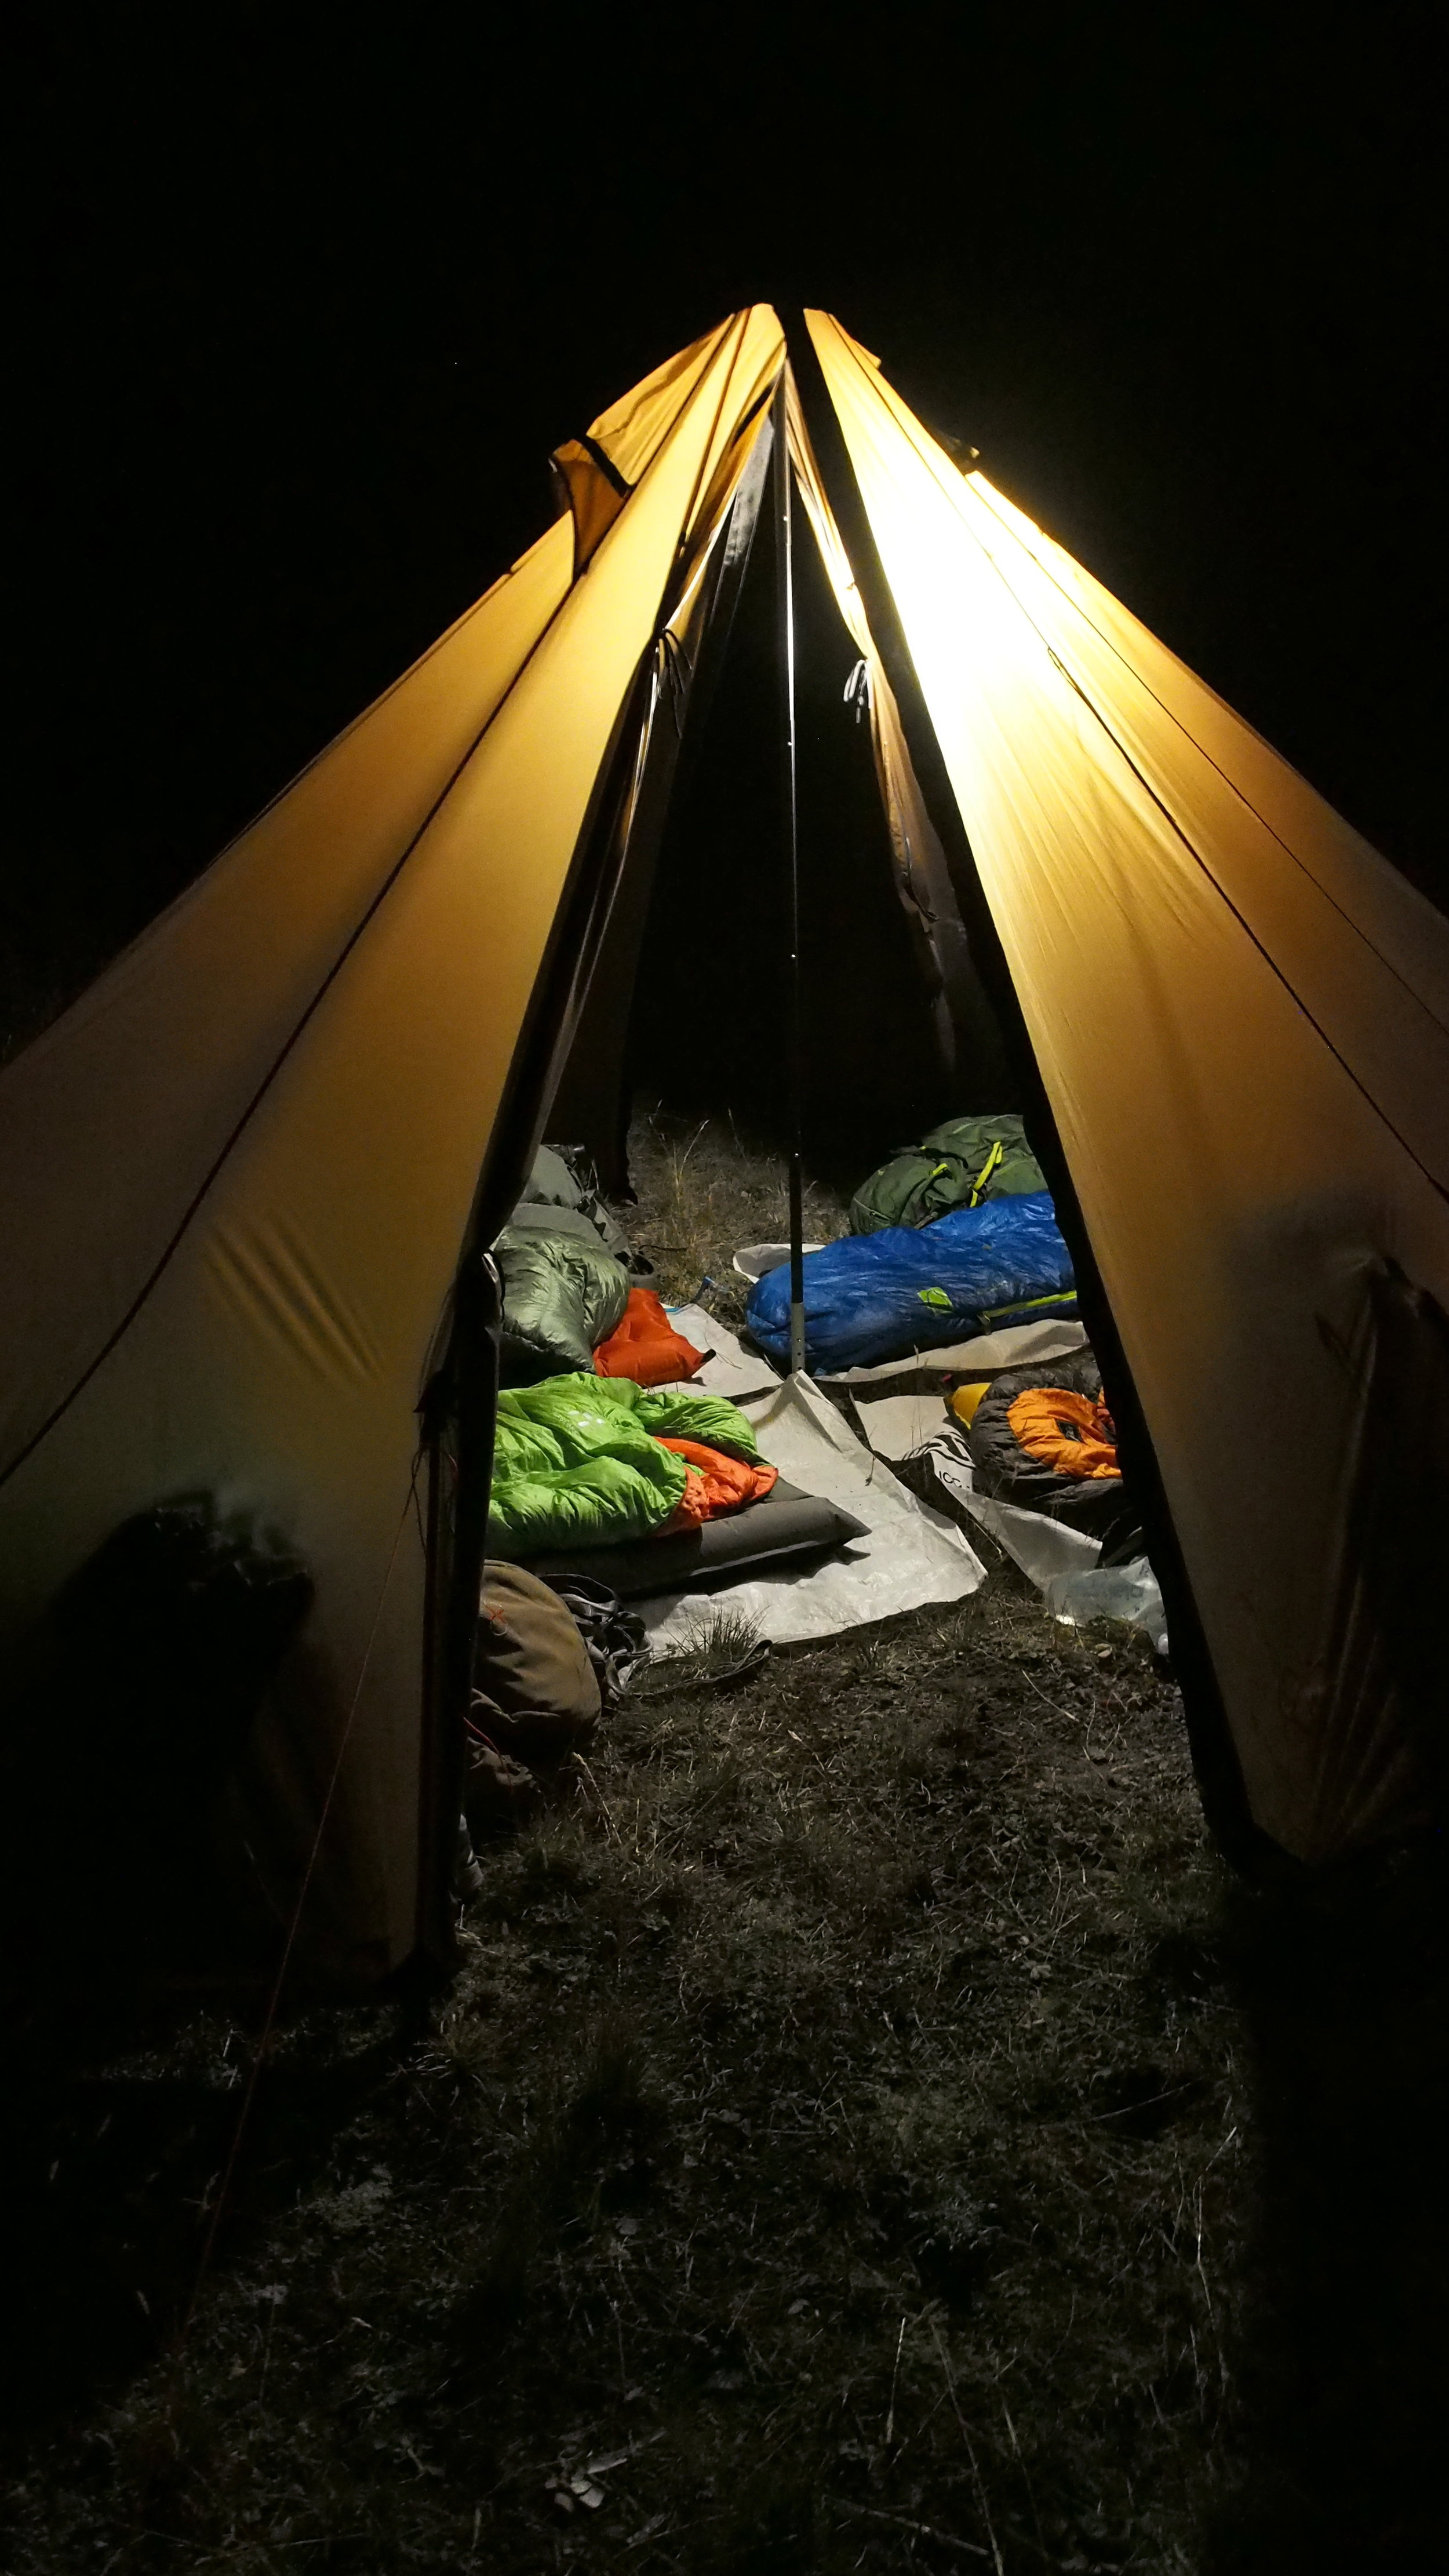 A quick shot of how it looks with 4 people sleeping inside. Not cramped at all and easily doable for days on end.